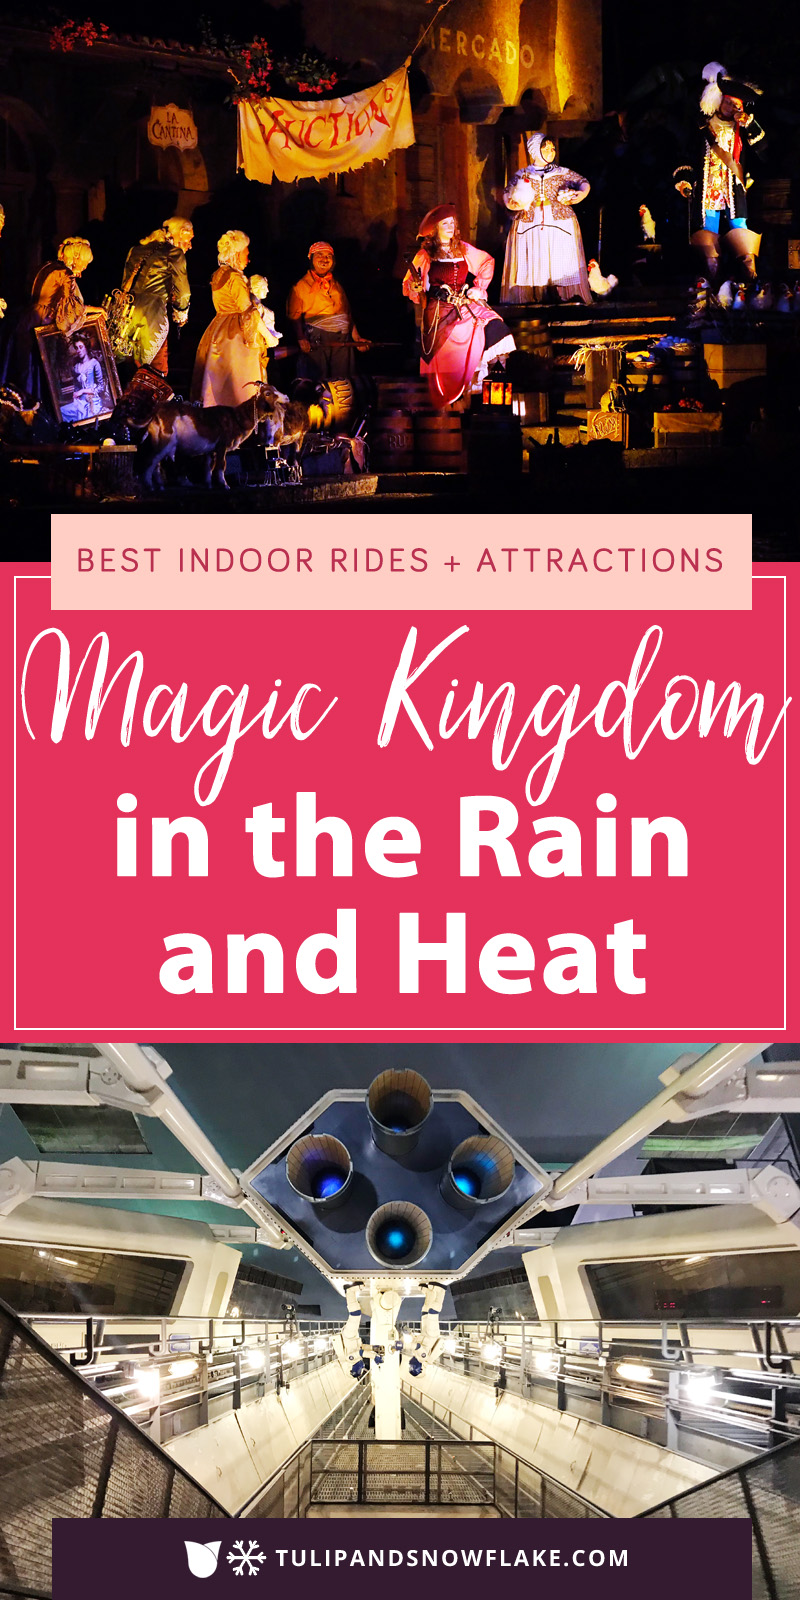 Magic Kingdom in the Rain and Heat